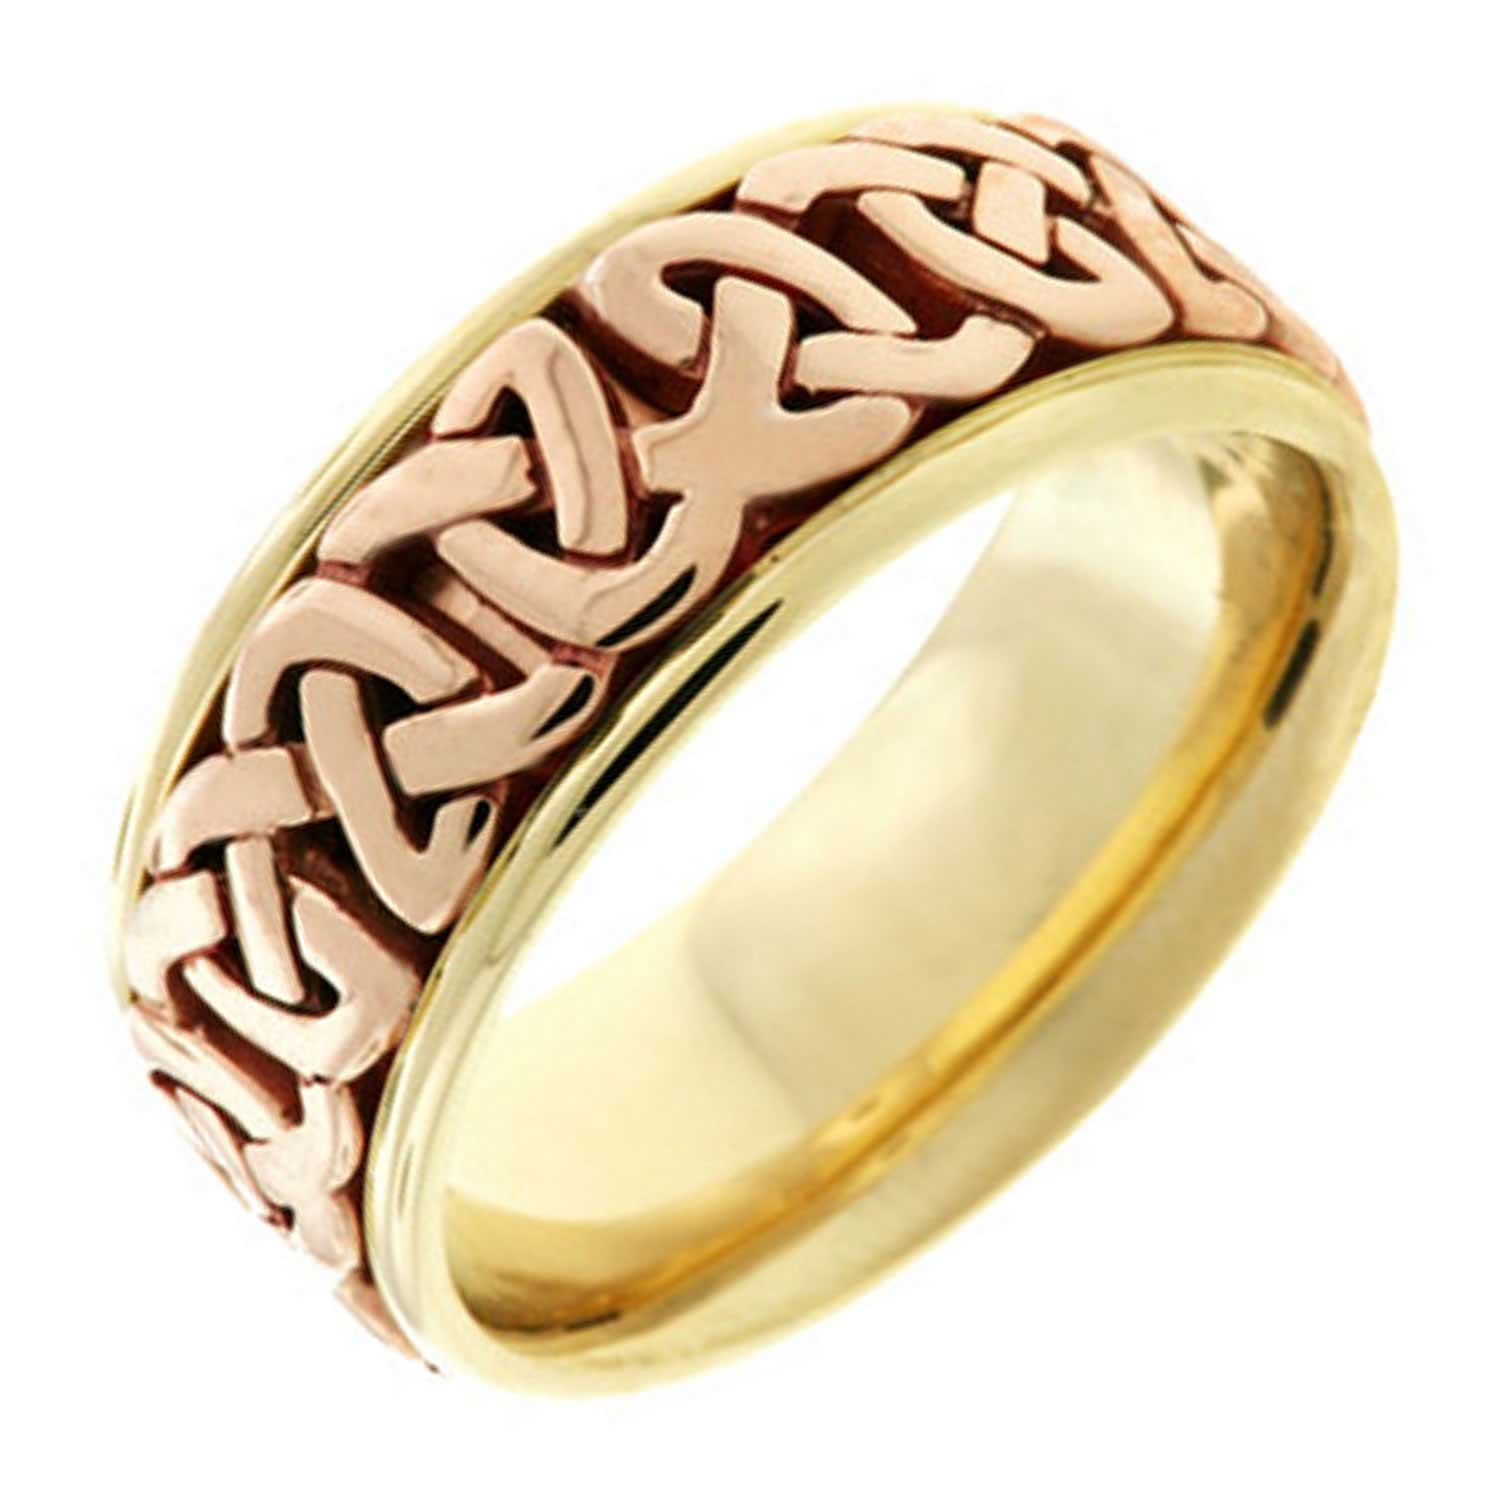 18K Two Tone Gold Celtic Love Knot Men's Comfort Fit Wedding Band (8.5mm) Size-8.5c1